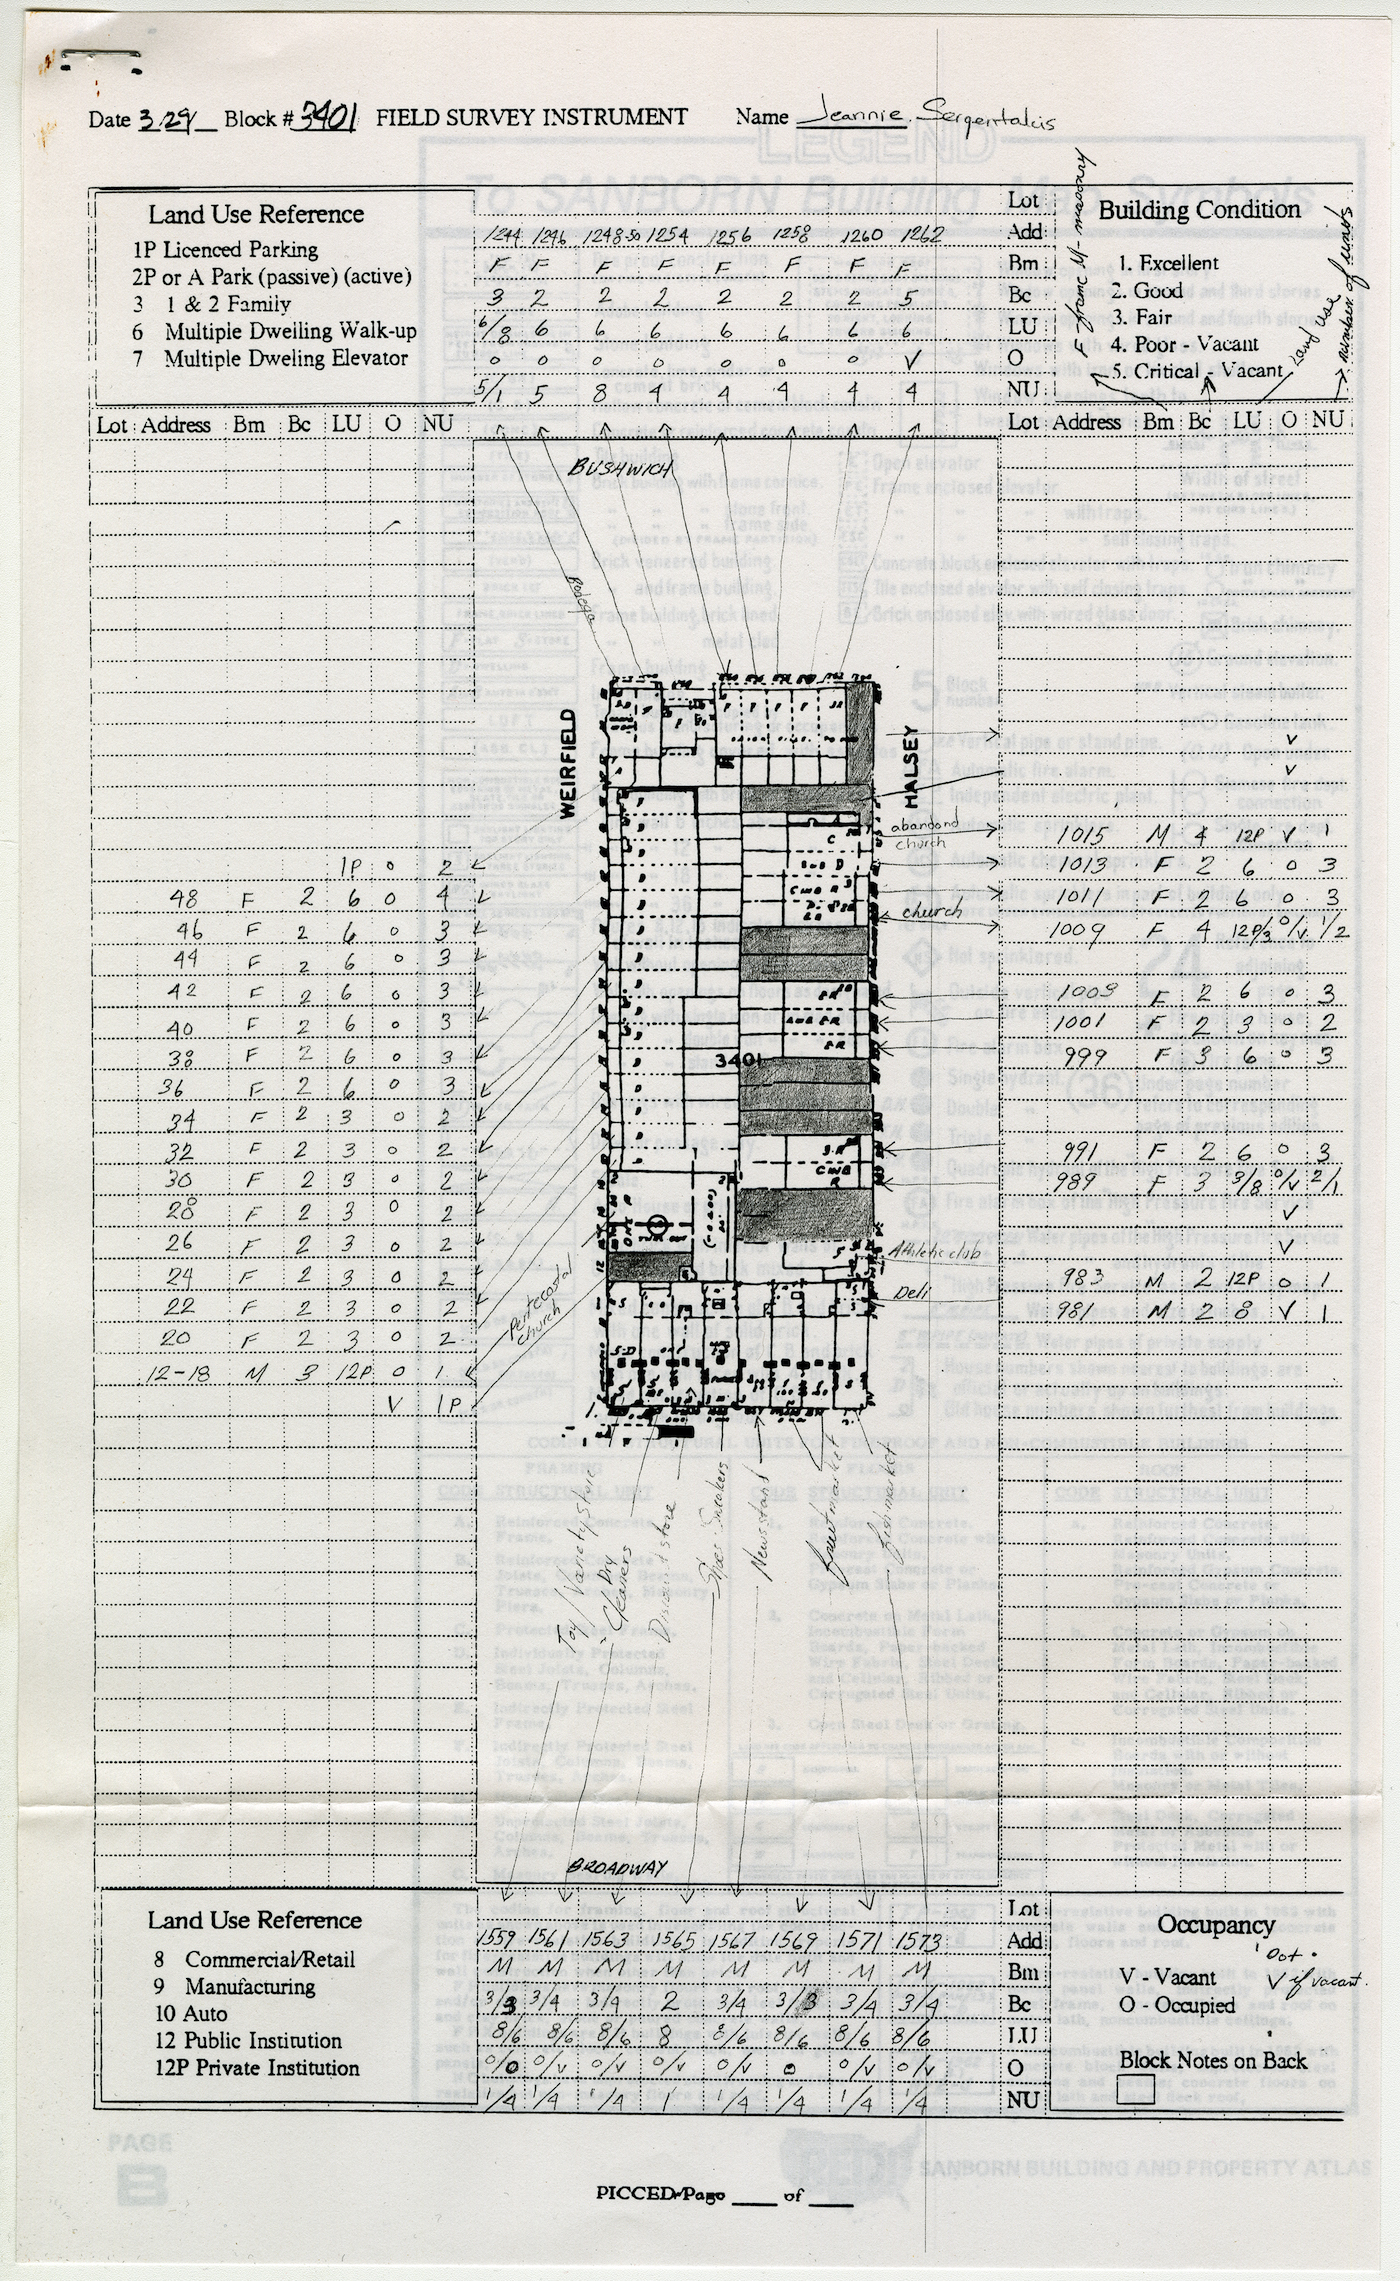 Land Use and Building Condition Surveys (1989) (Ronald Shiffman collection on the Pratt Center for Community Development, 2013.023, Box 59, Folder 3; Brooklyn Historical Society)